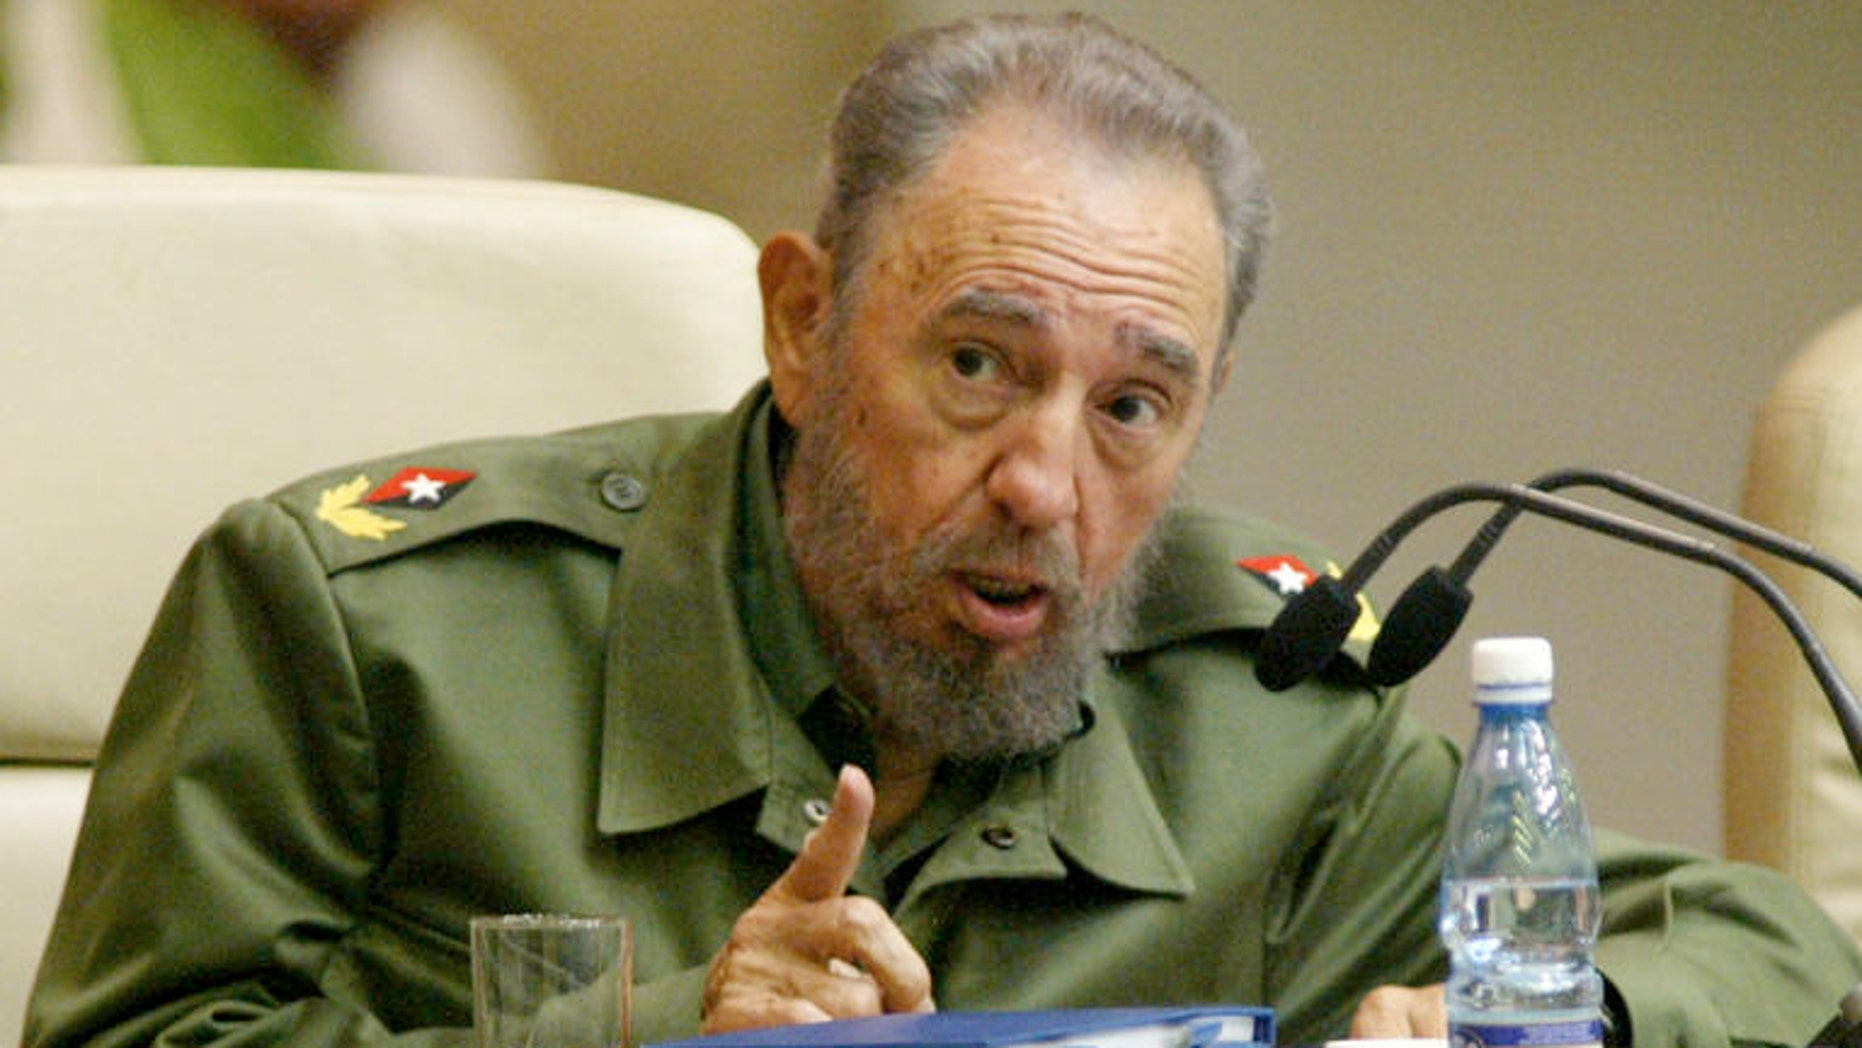 President Fidel Castro attends an anti-terrorism conference in Havana, Cuba, Saturday, June 6, 2005. For decades, participants said, the United States has been behind efforts to suppress leftist movements in Latin America, from the backing of the region's violent, right-wing military dictatorships in the 1970s and 1980s to the current meddling in the politics of liberal-led countries. The policy, they said, has again reared its head with the current handling of a Cuban militant wanted in Venezuela for an airliner bombing _ the issue that spawned the conference, originally a three-day event that host Castro extended to run a fourth day Sunday. (AP Photo/Jorge Rey)